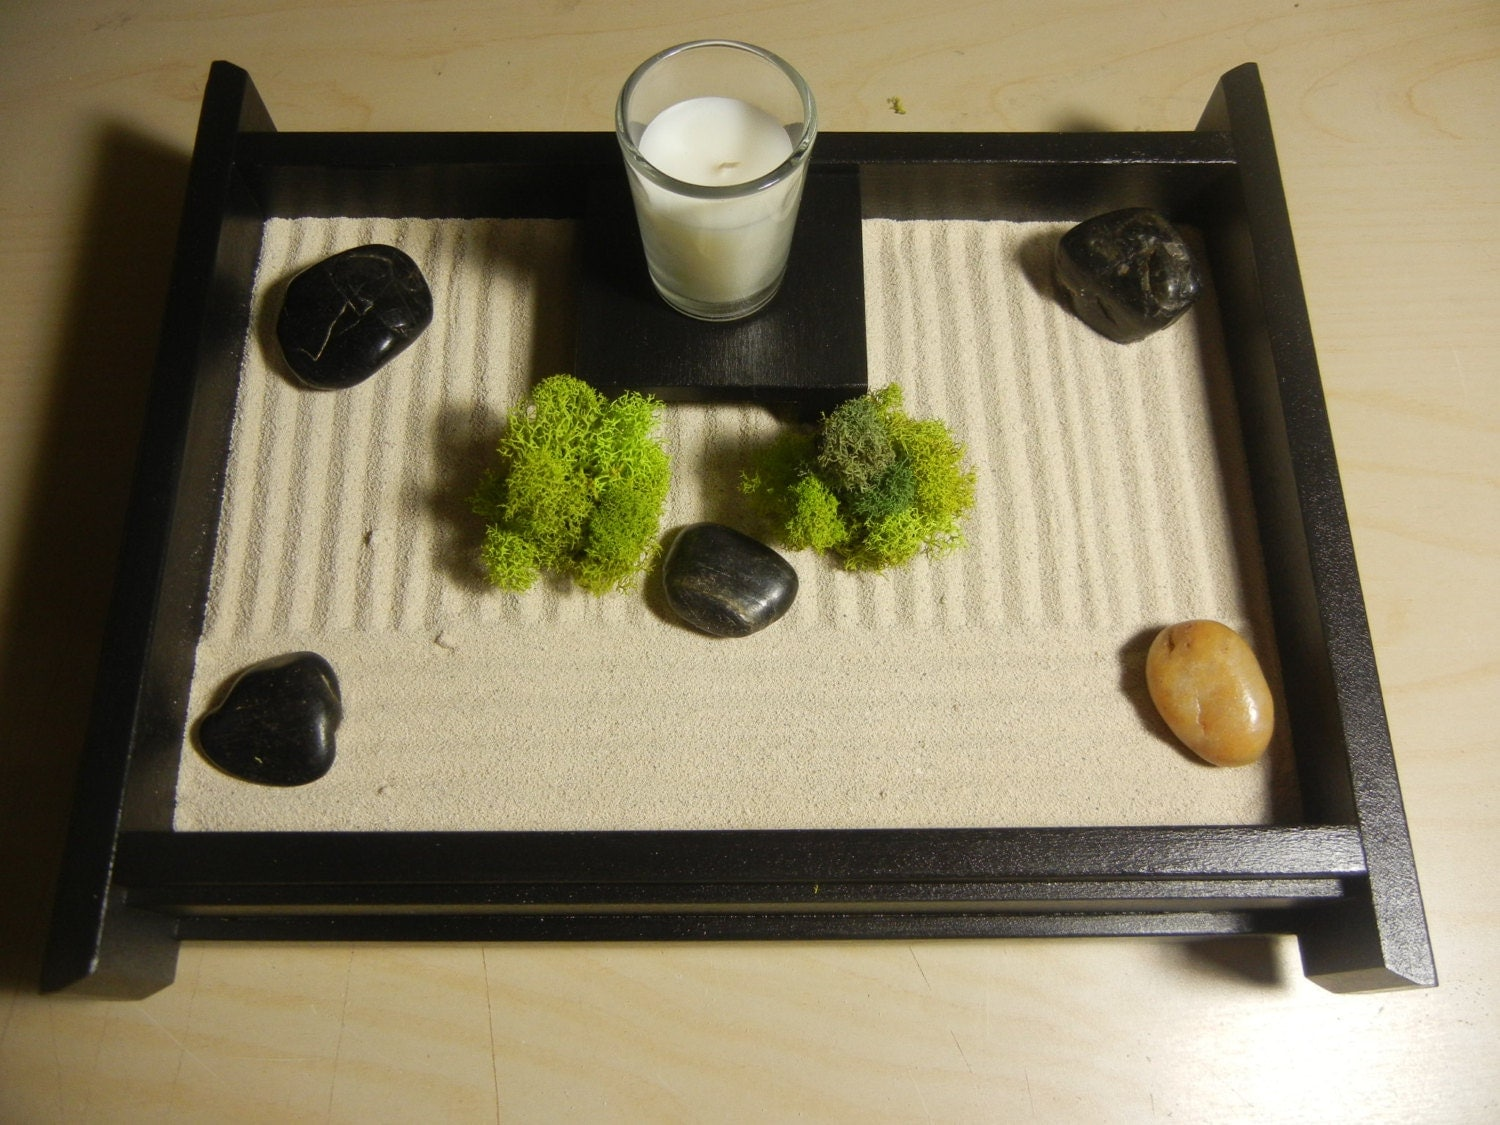 S02 Small Desk Or Table Top Zen Garden With Candle And Stand